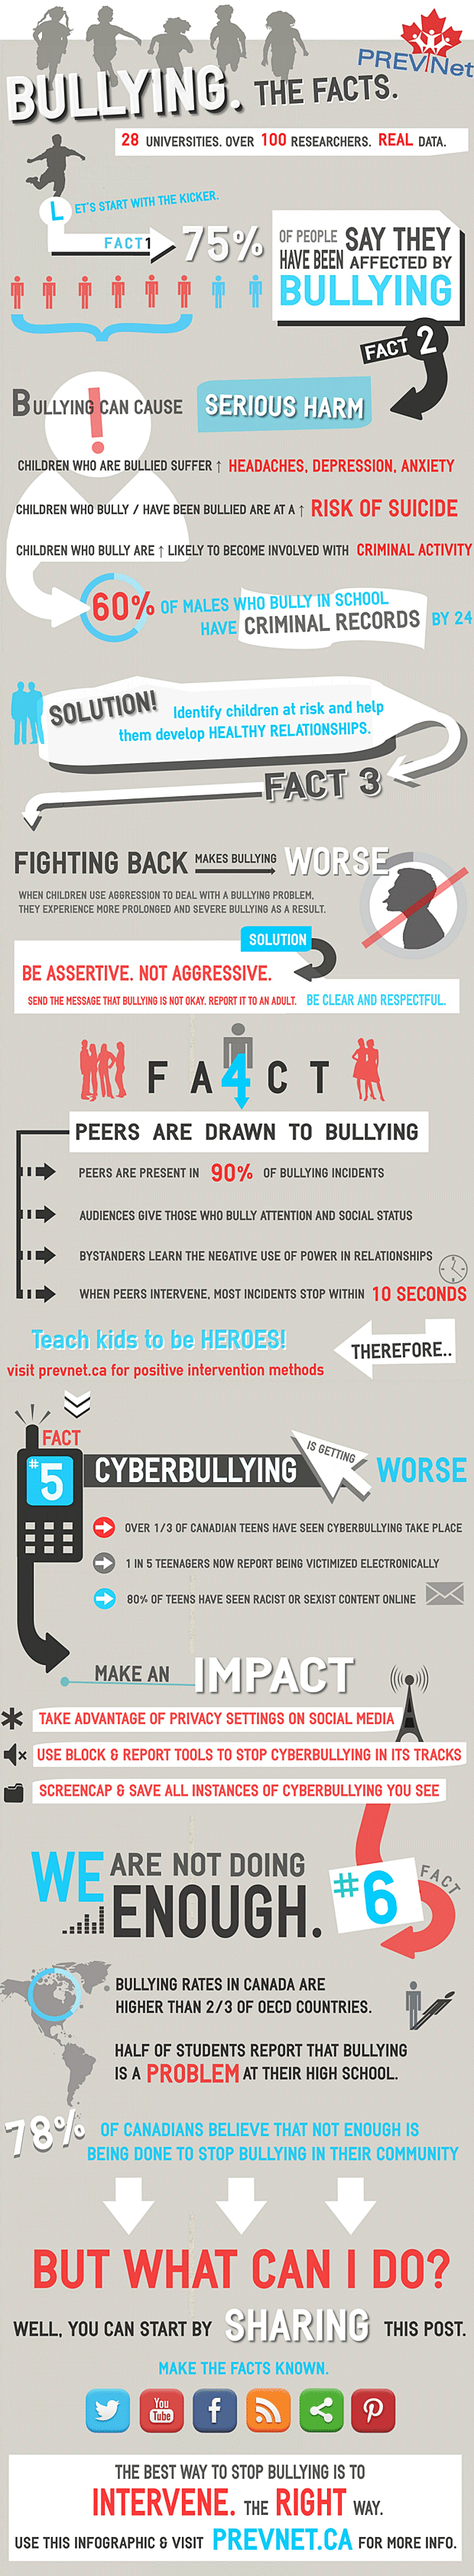 PREVNet's Bullying. The Facts information graphic